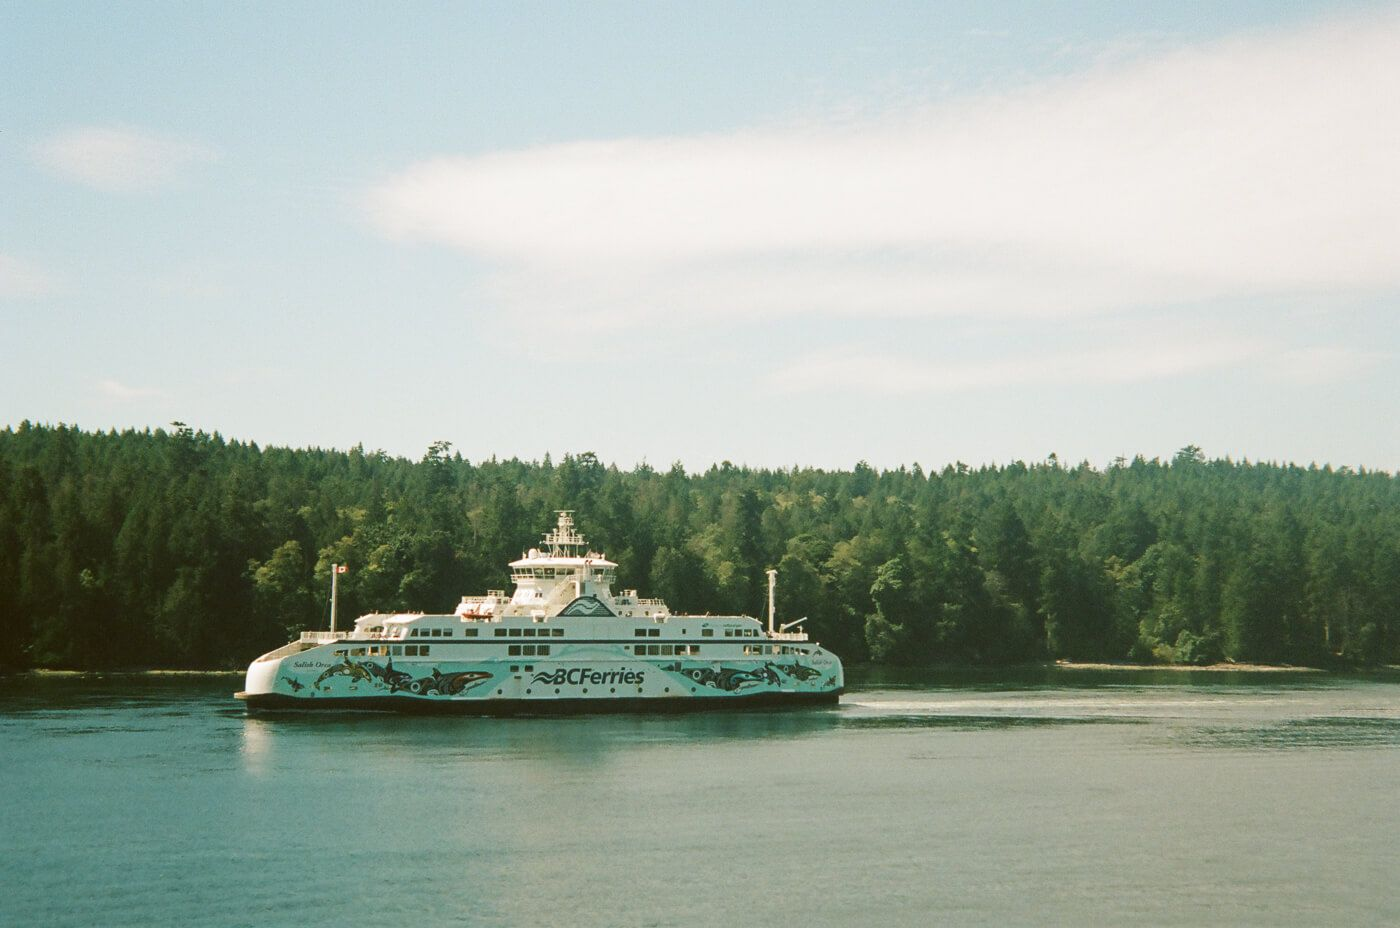 A ferry going past land with lots of trees.